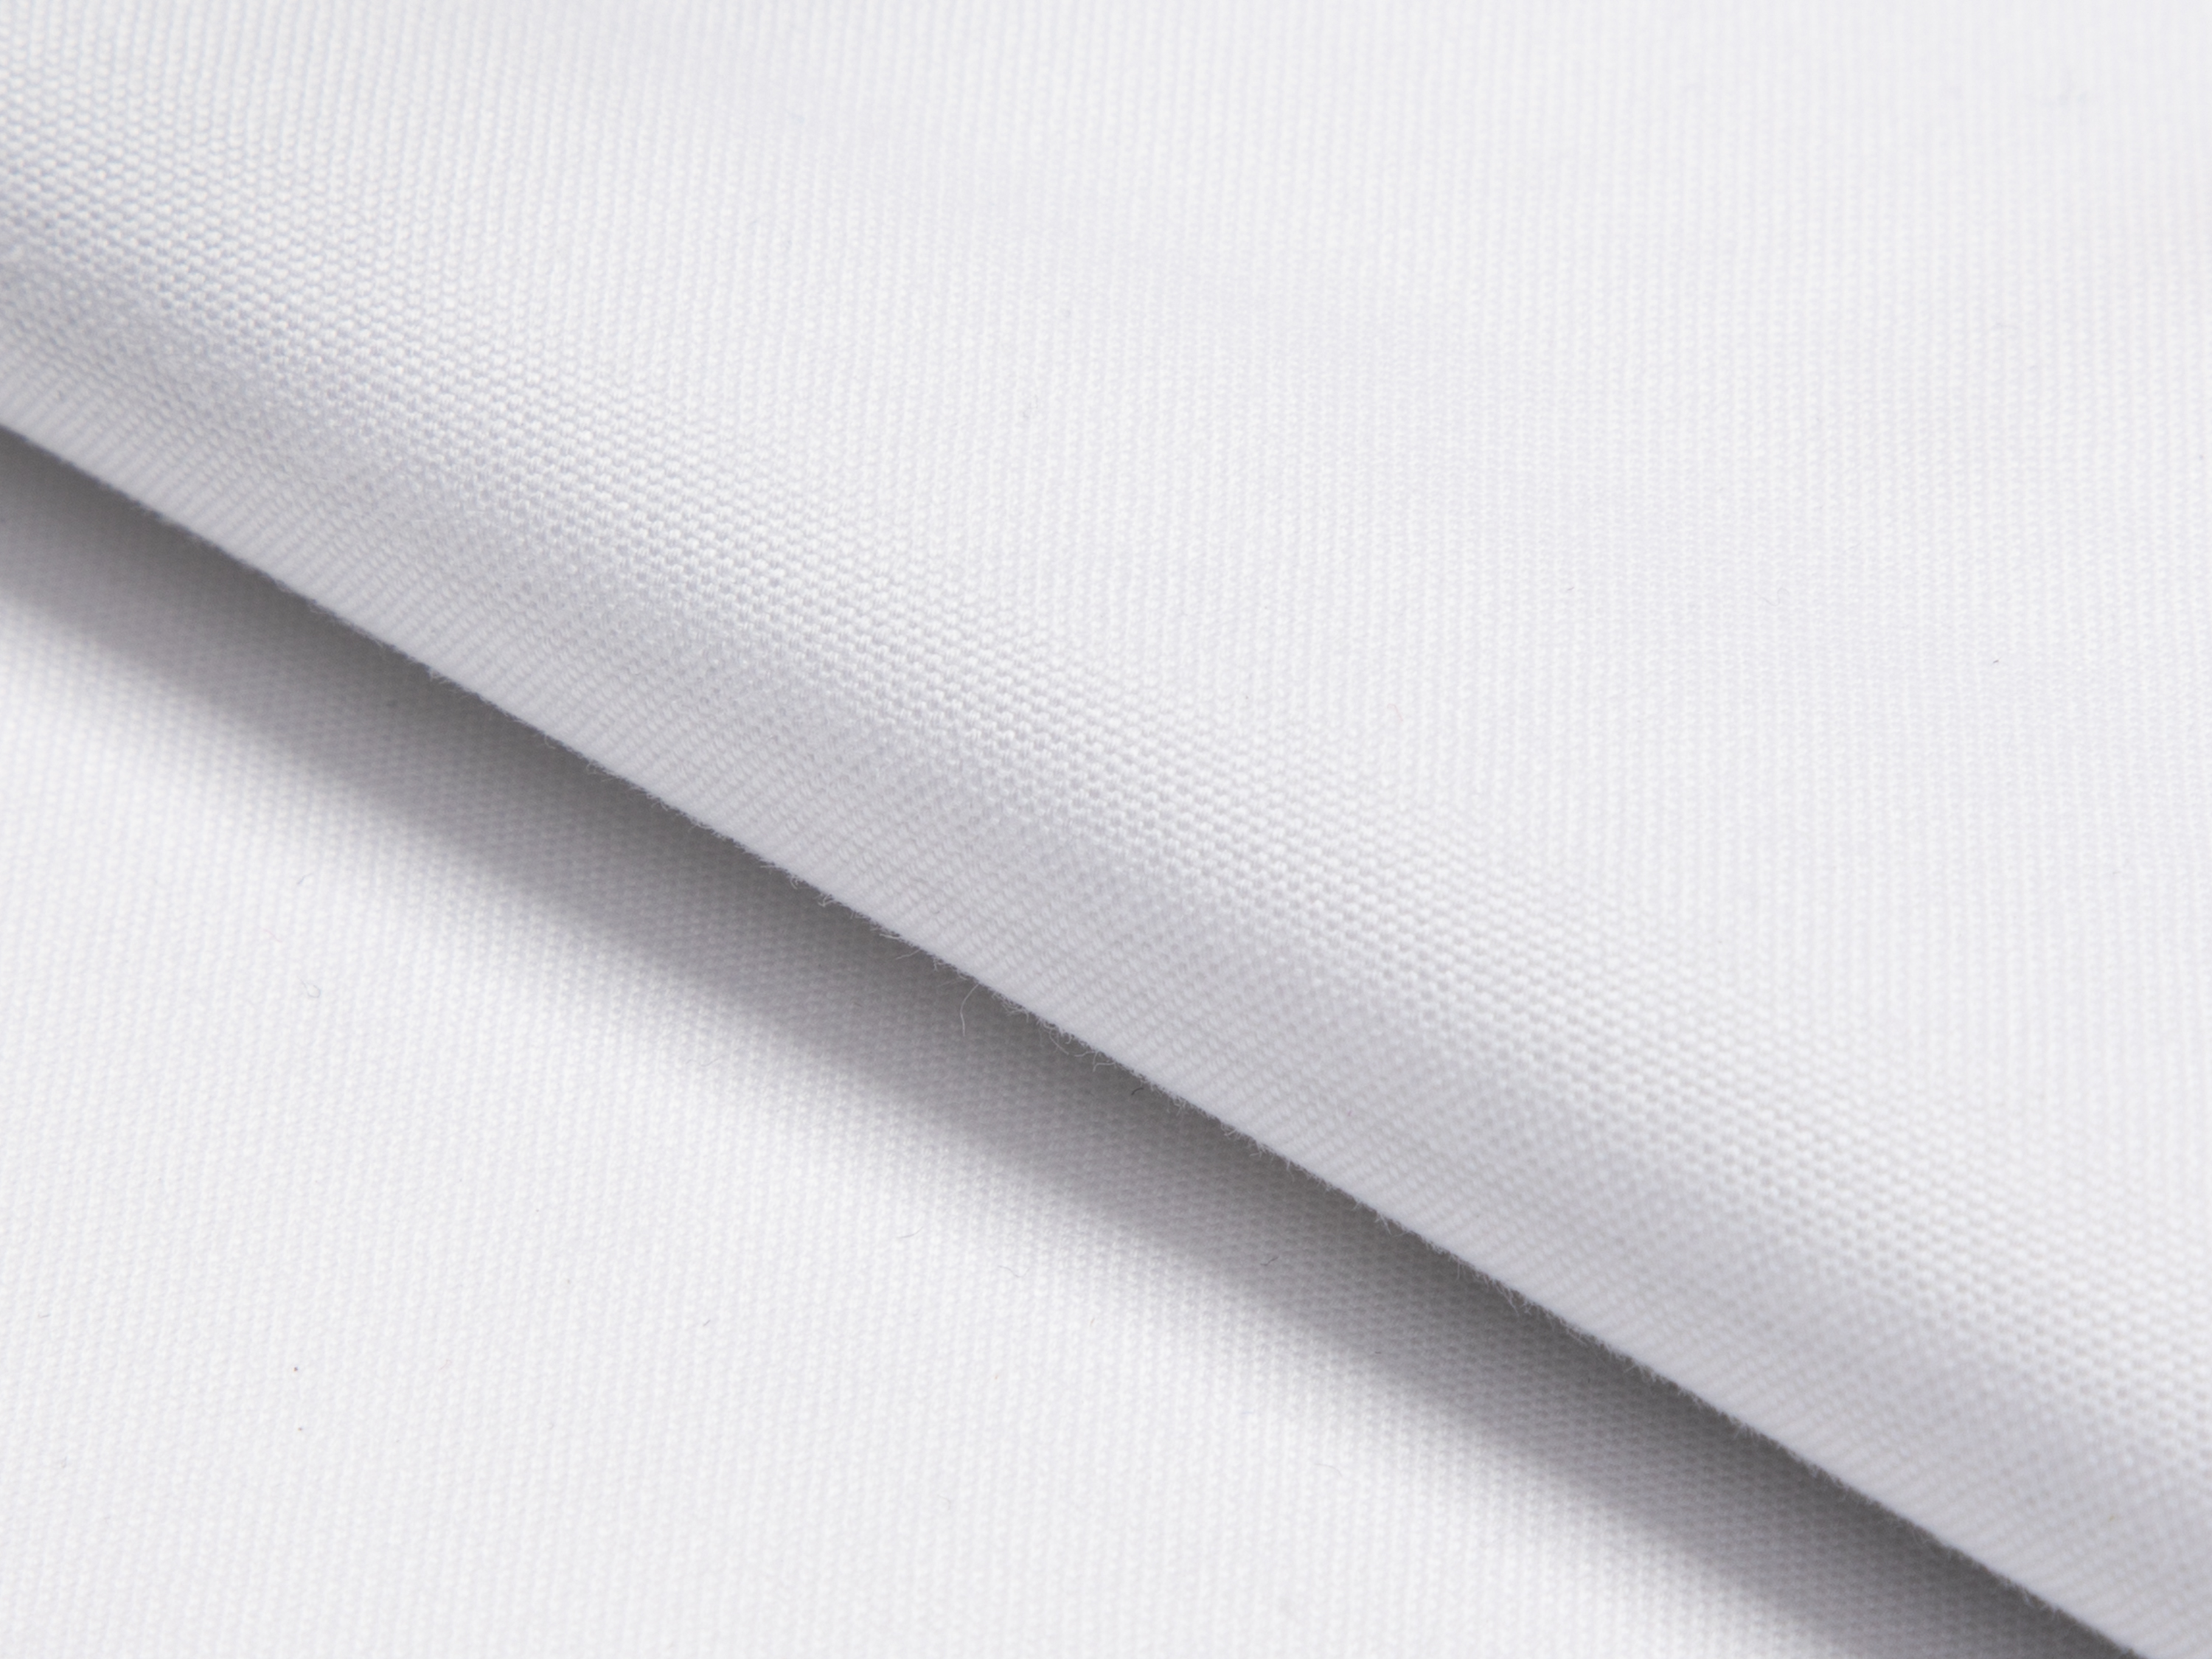 Buy tailor made shirts online - PINPOINT LUXURY (NEW) - Pinpoint White